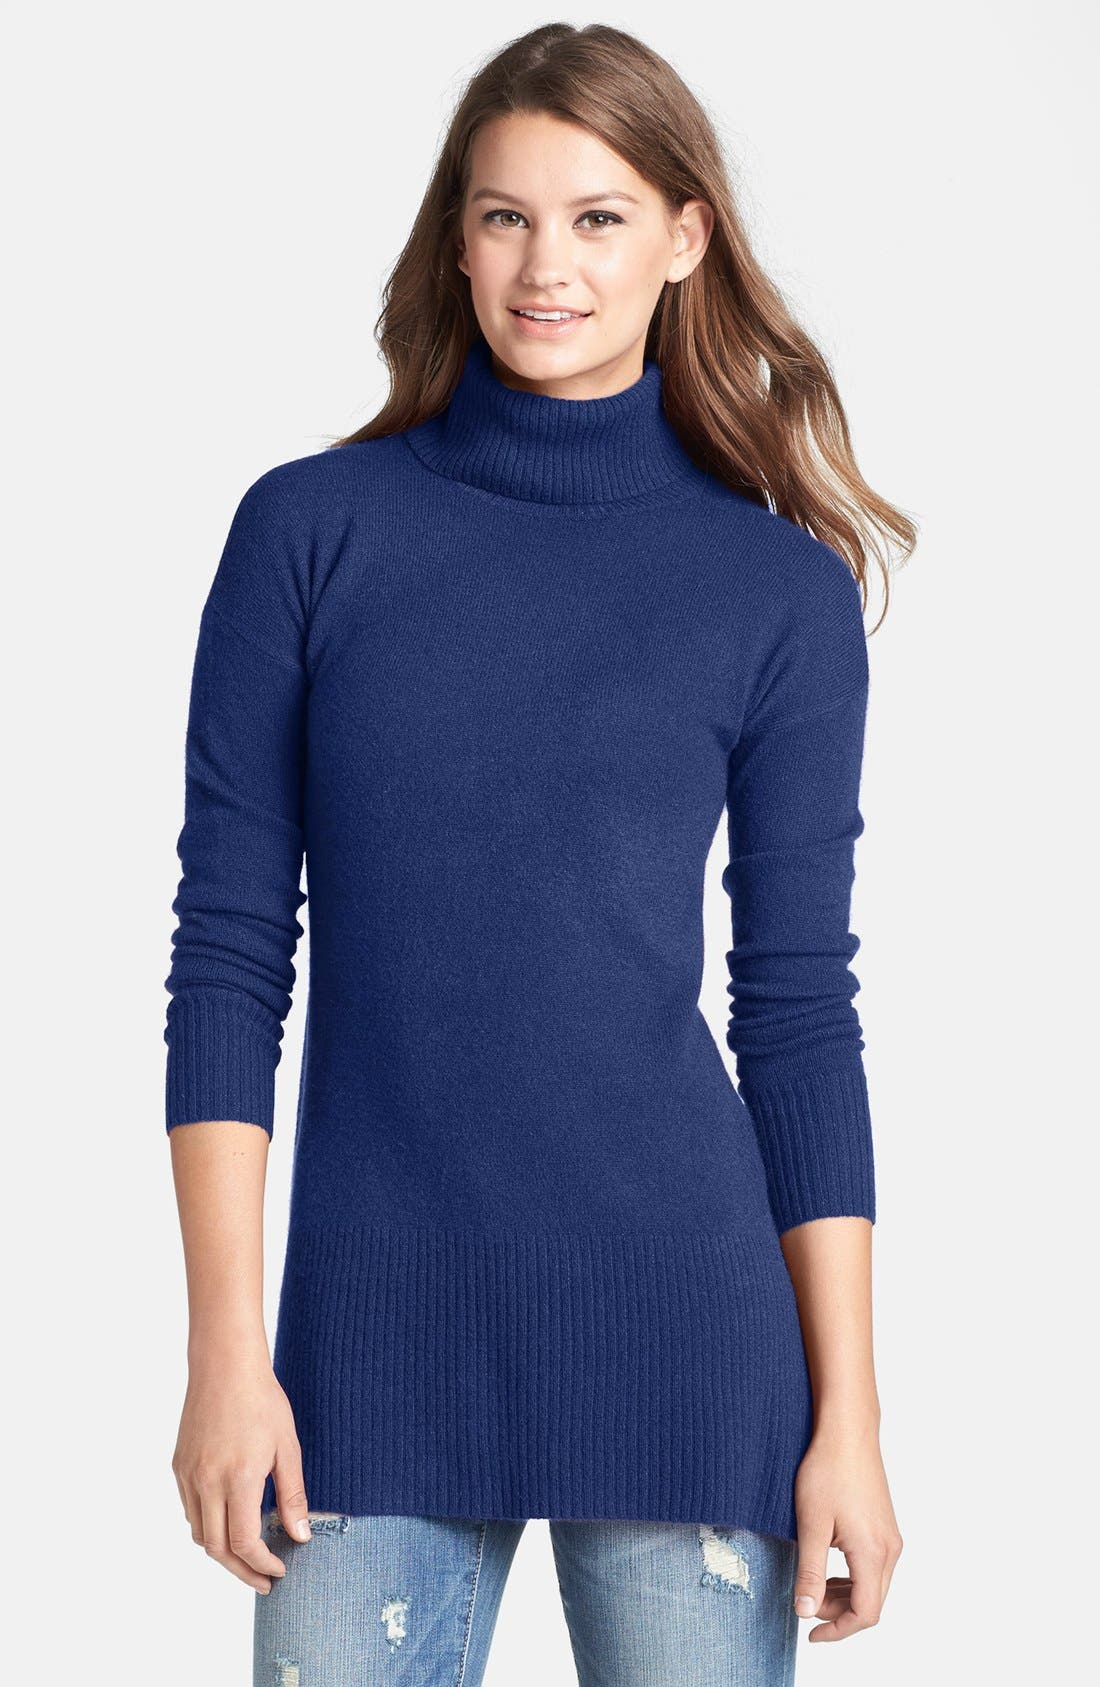 Alternate Image 1 Selected - Caslon® Cashmere Turtleneck Sweater